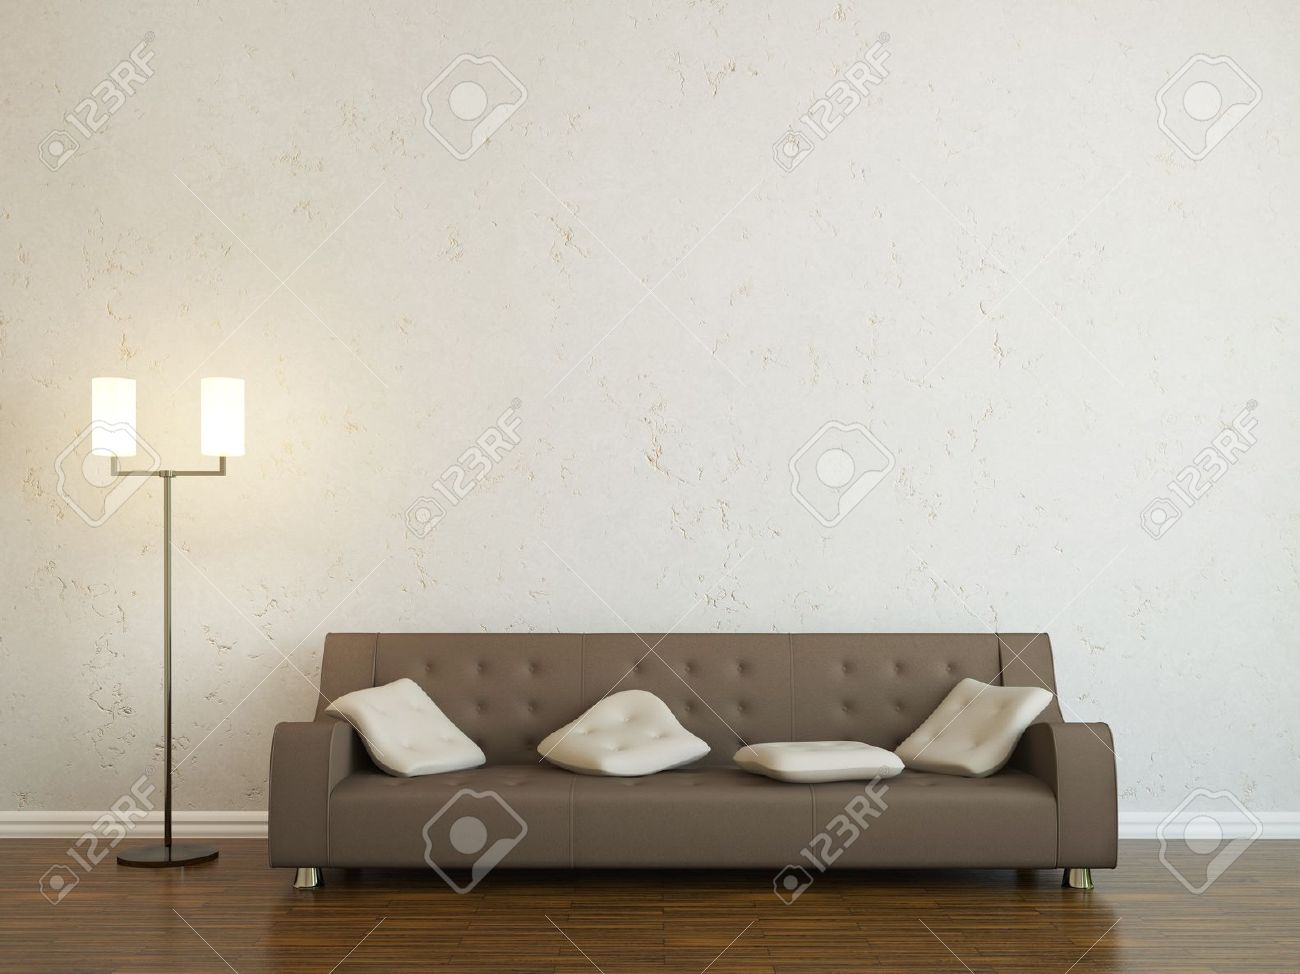 Amazing Sofa Lamp 60 With Additional Sofa Room Ideas with Sofa Lamp